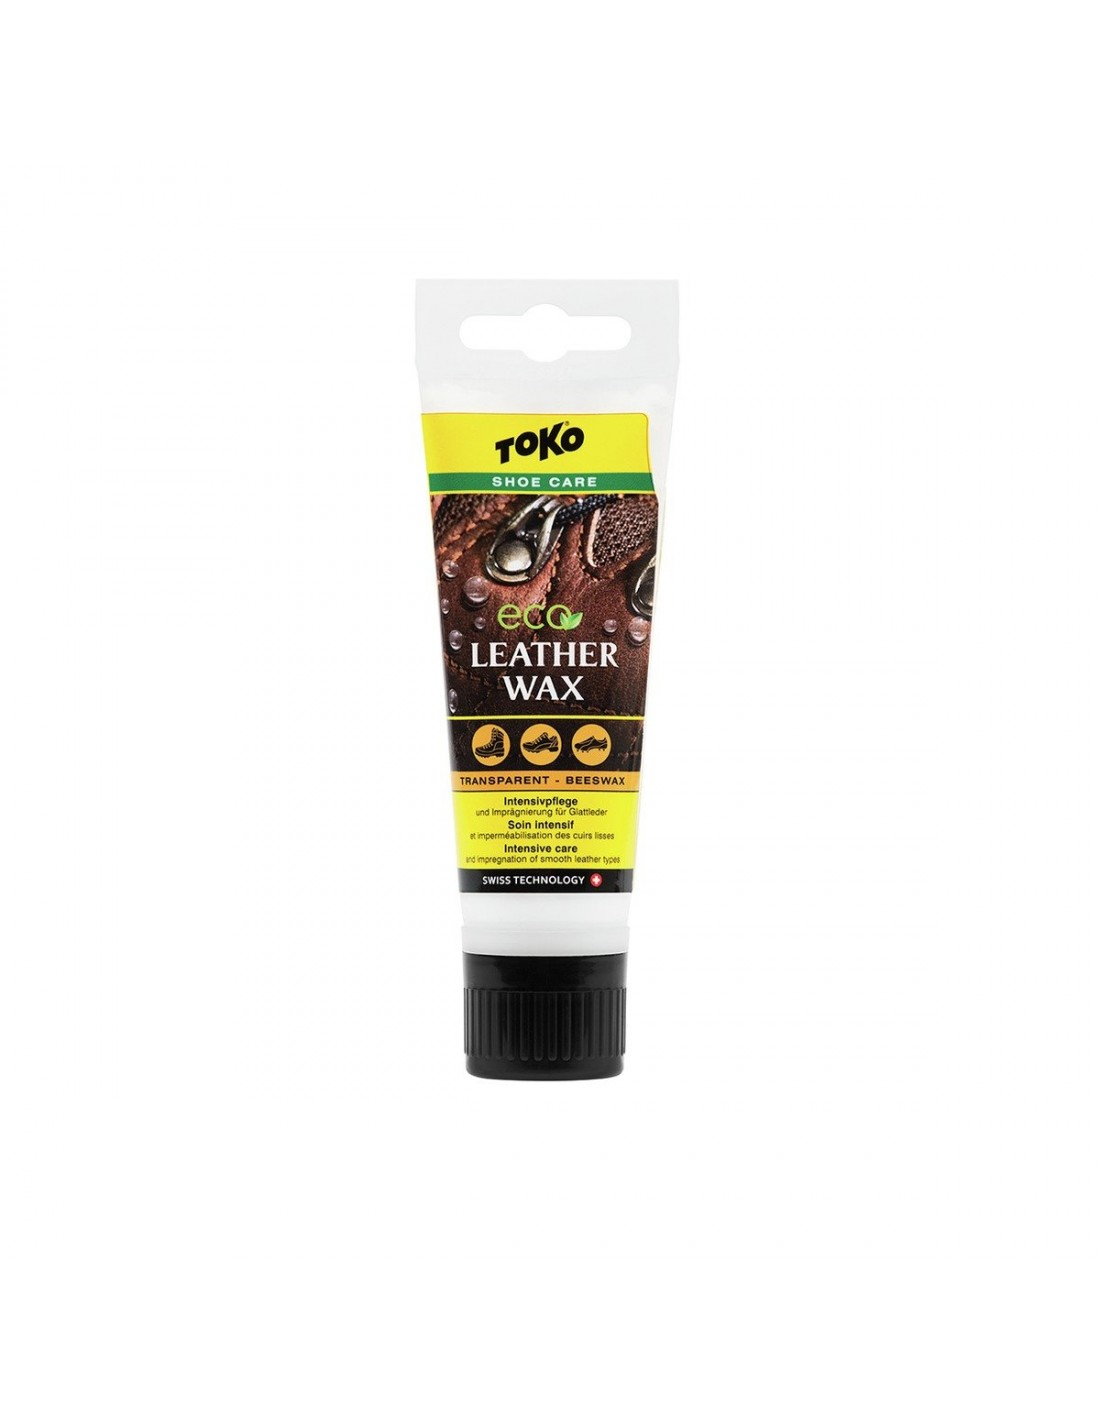 Impregnering Toko Leather Wax Transp-Beeswax 75ml 5582667 119 kr